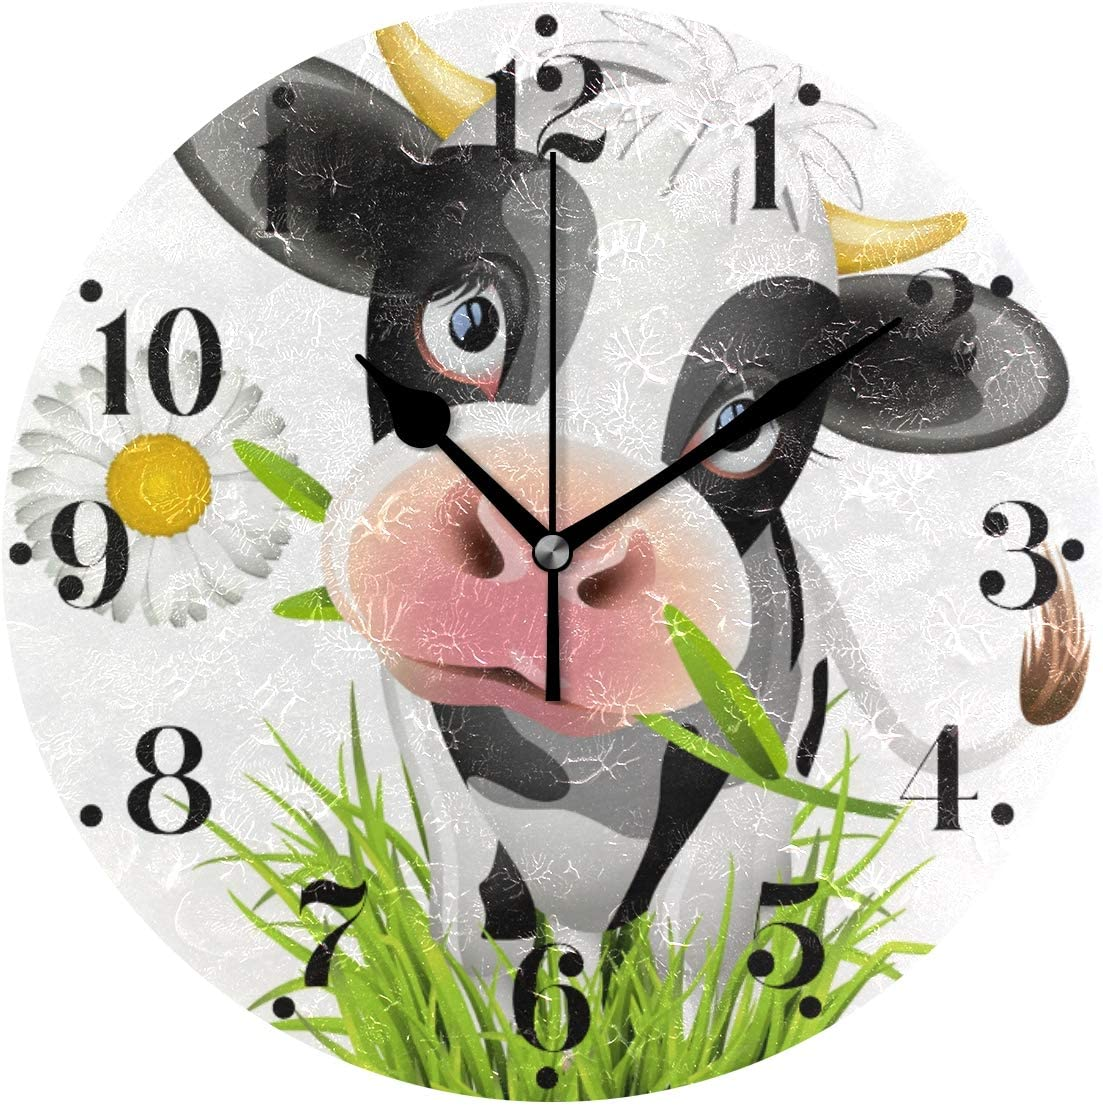 Hupery Cute Holstein Cow Wall Clock Silent Non Ticking Round Wall Hanging Clock Battery Operated Black Hands Decorative Wall Clocks for Bedroom Living Room Kitchen Office School